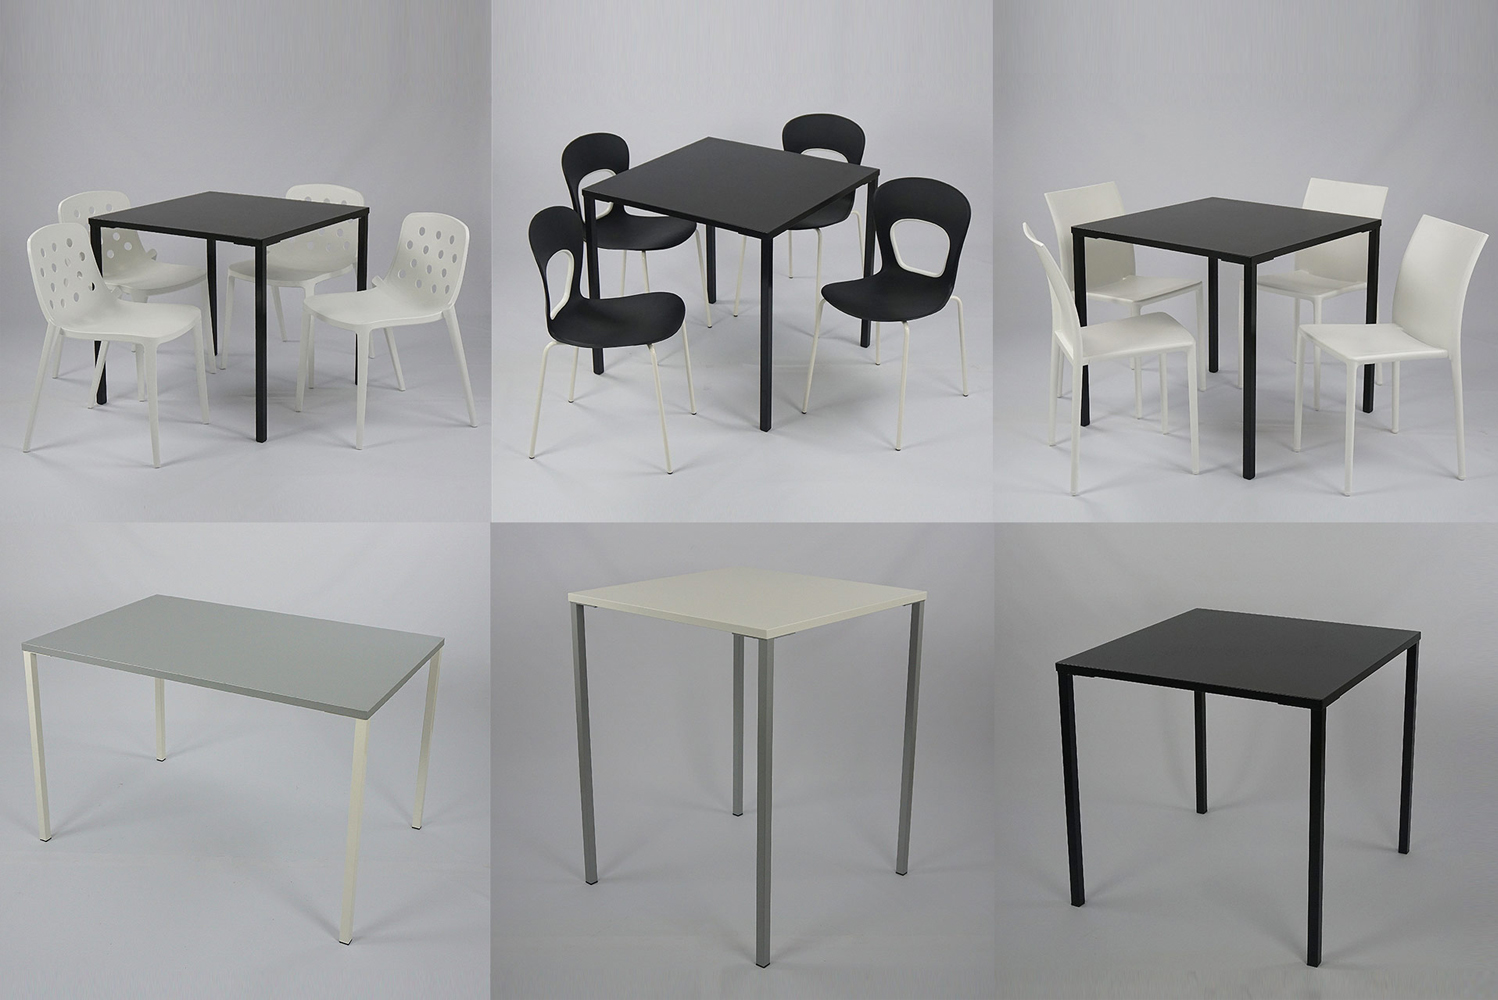 Options include chair/stool heights; square or rectangular tops; and choice of colors: legs and tops in any combination of white, black or grey.